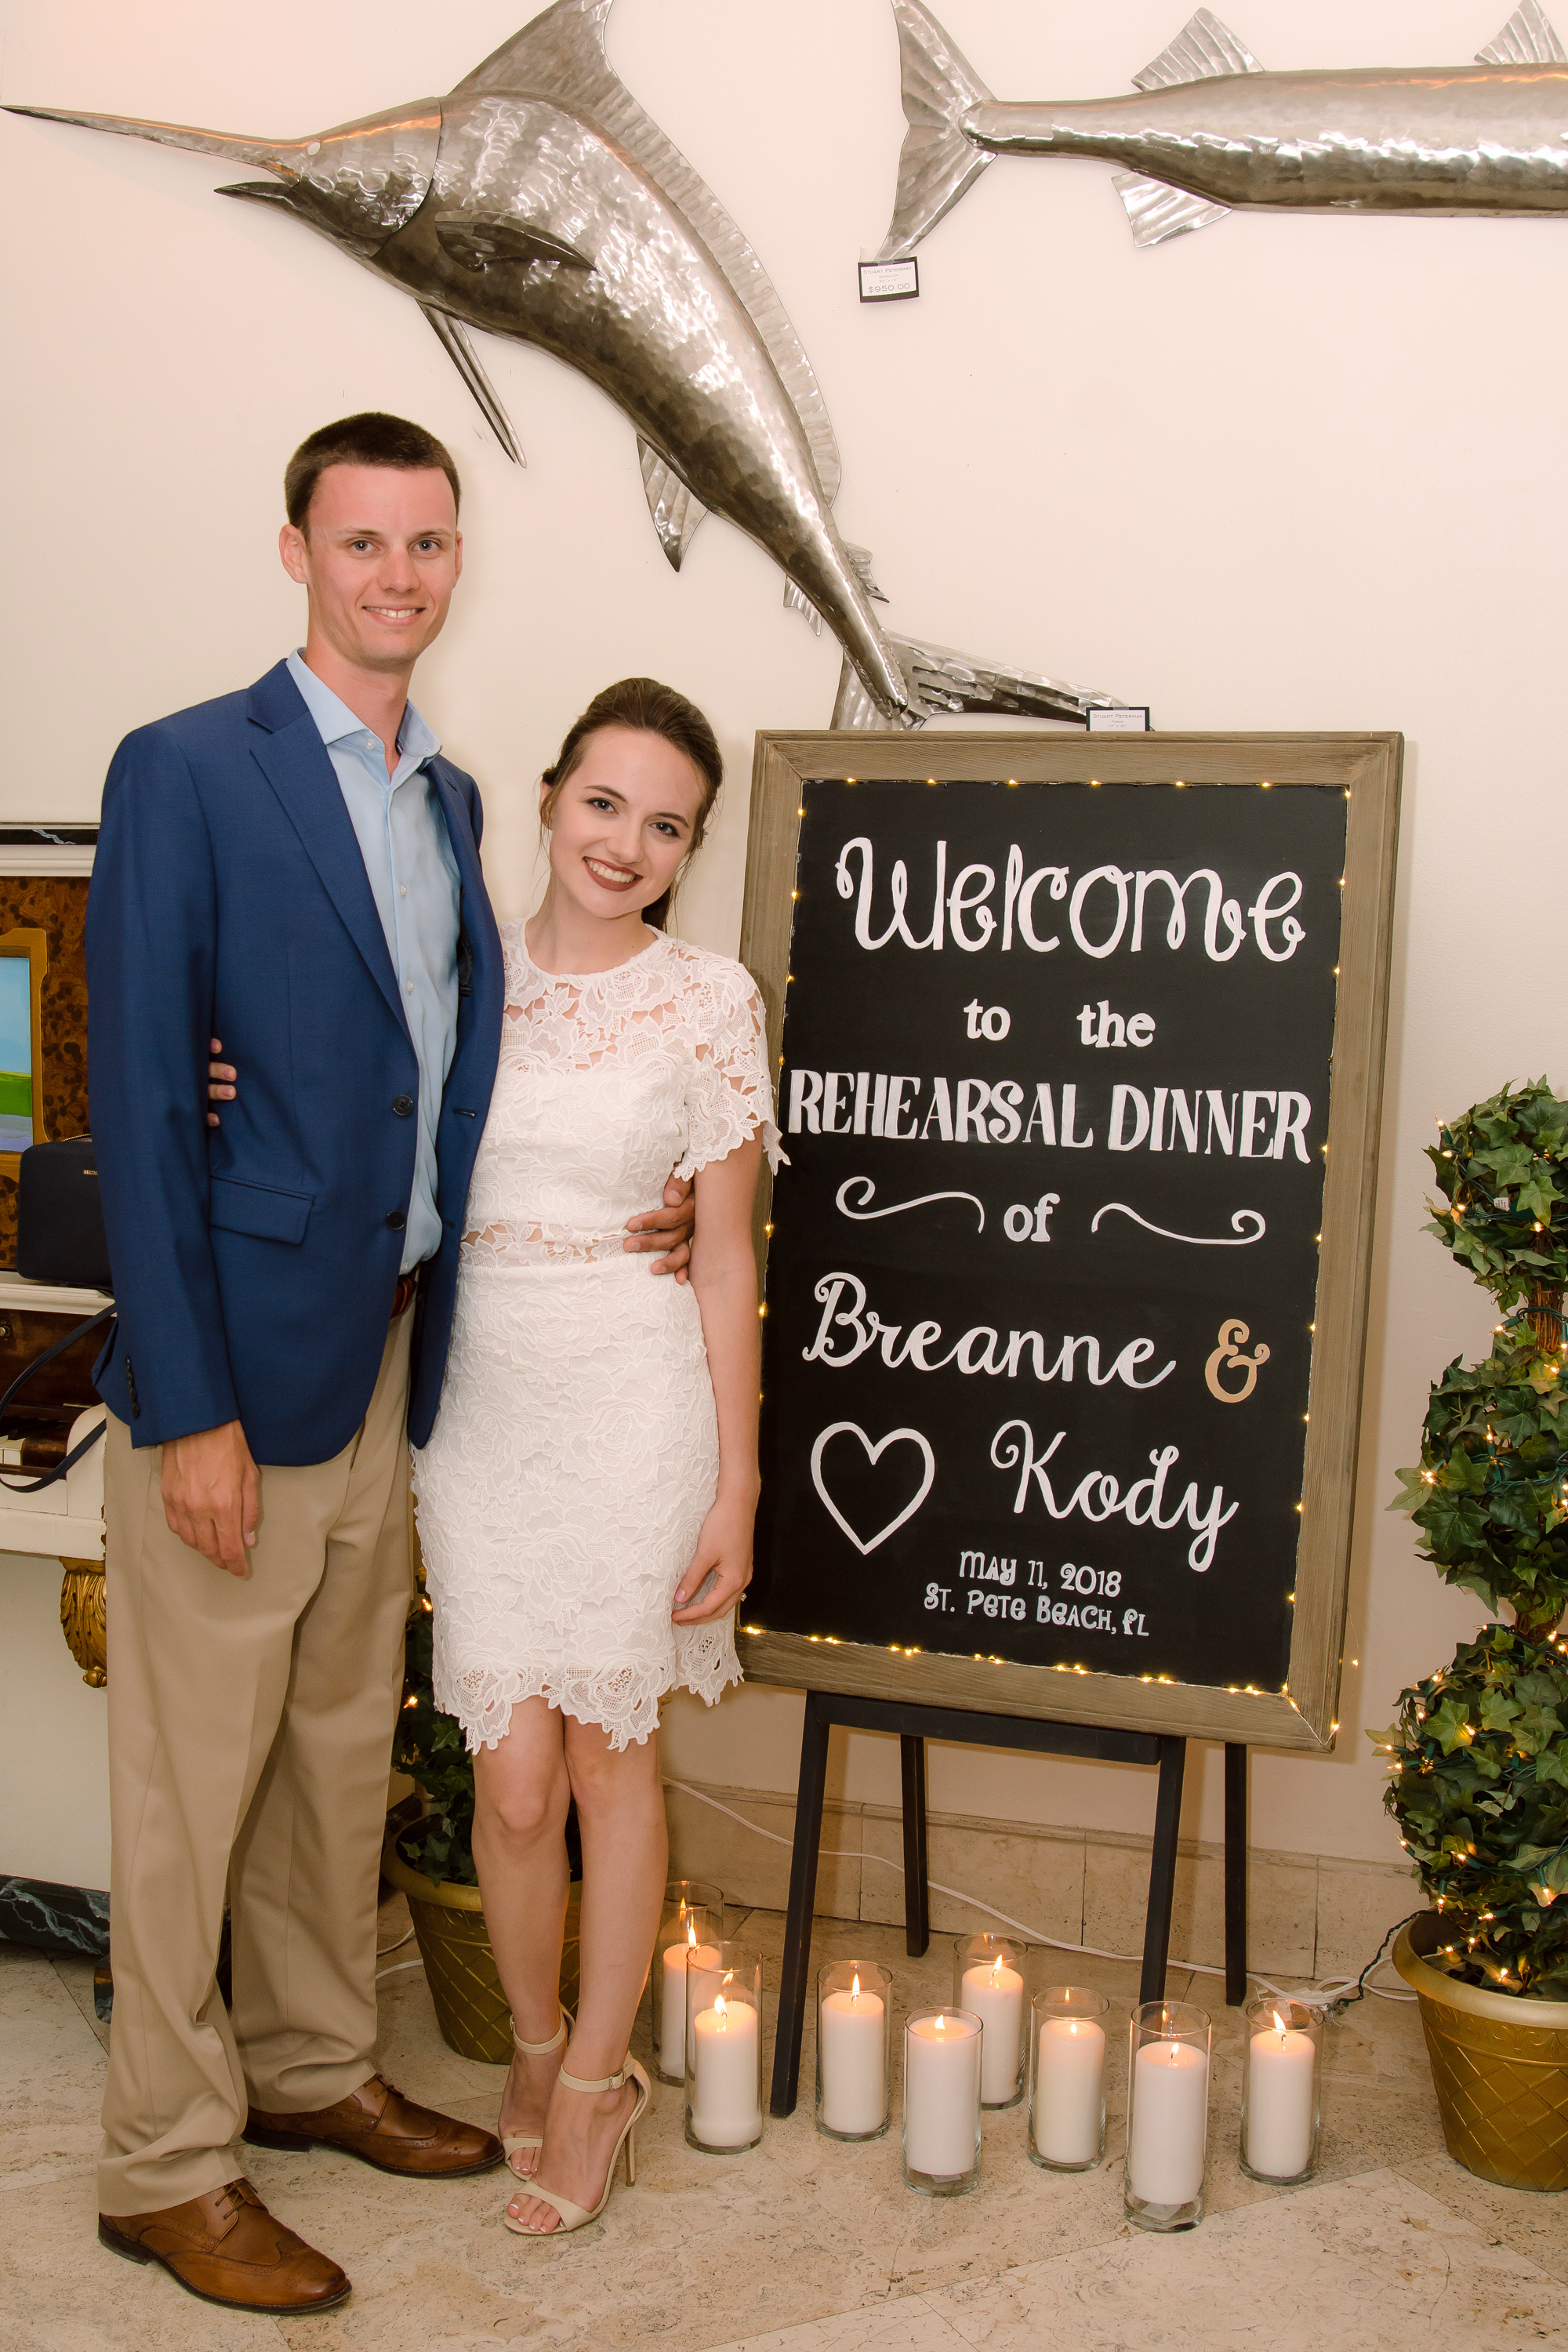 Breanne & Kody's Rehearsal Dinner - May 11, 2018 - Salt Rock Grill, Indian Rocks Beach